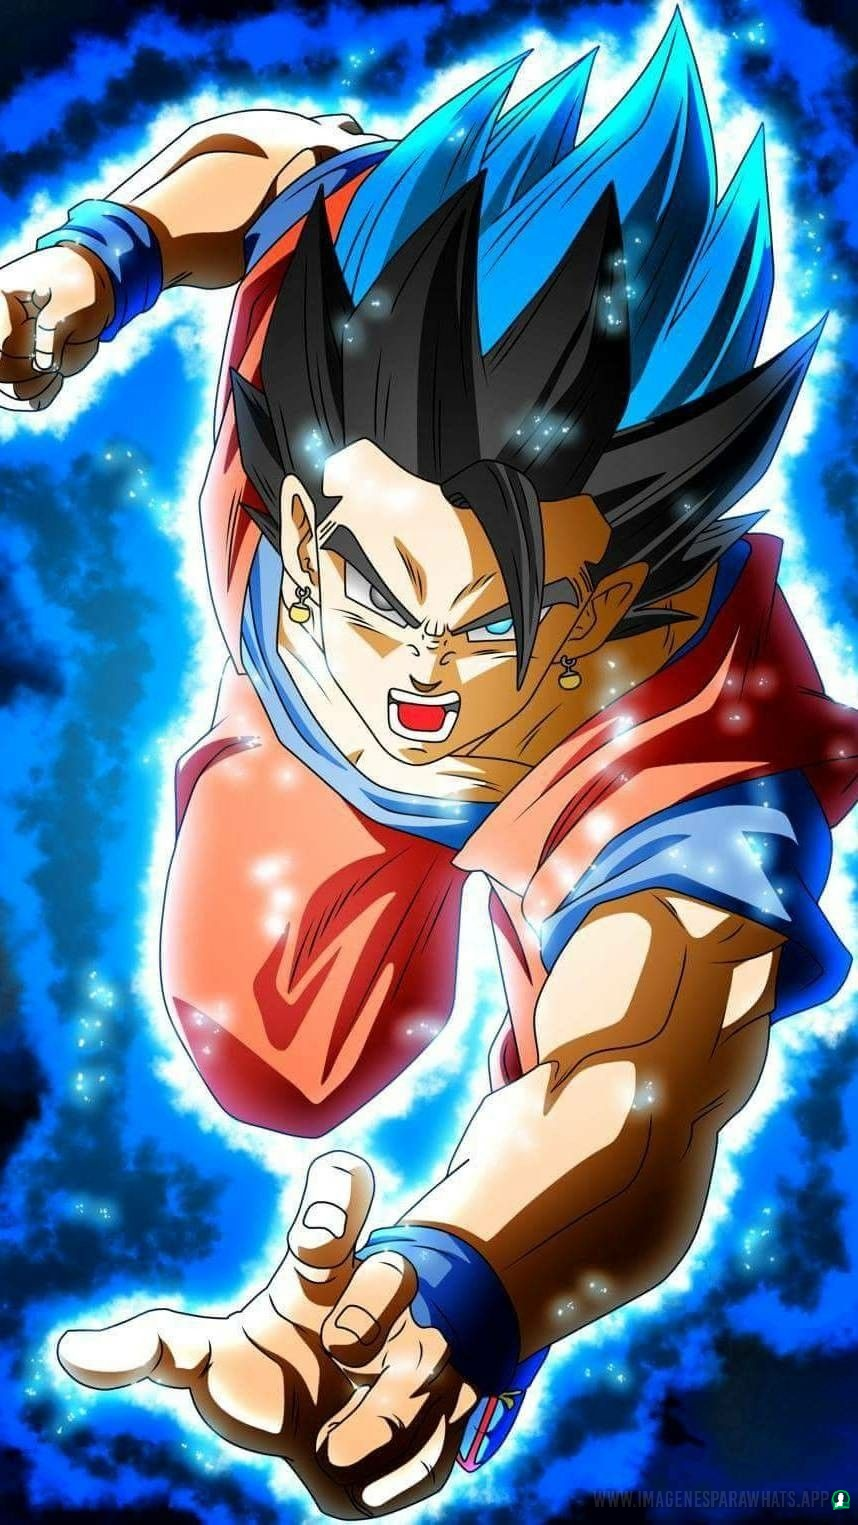 Imagenes de Dragon Ball (1022)